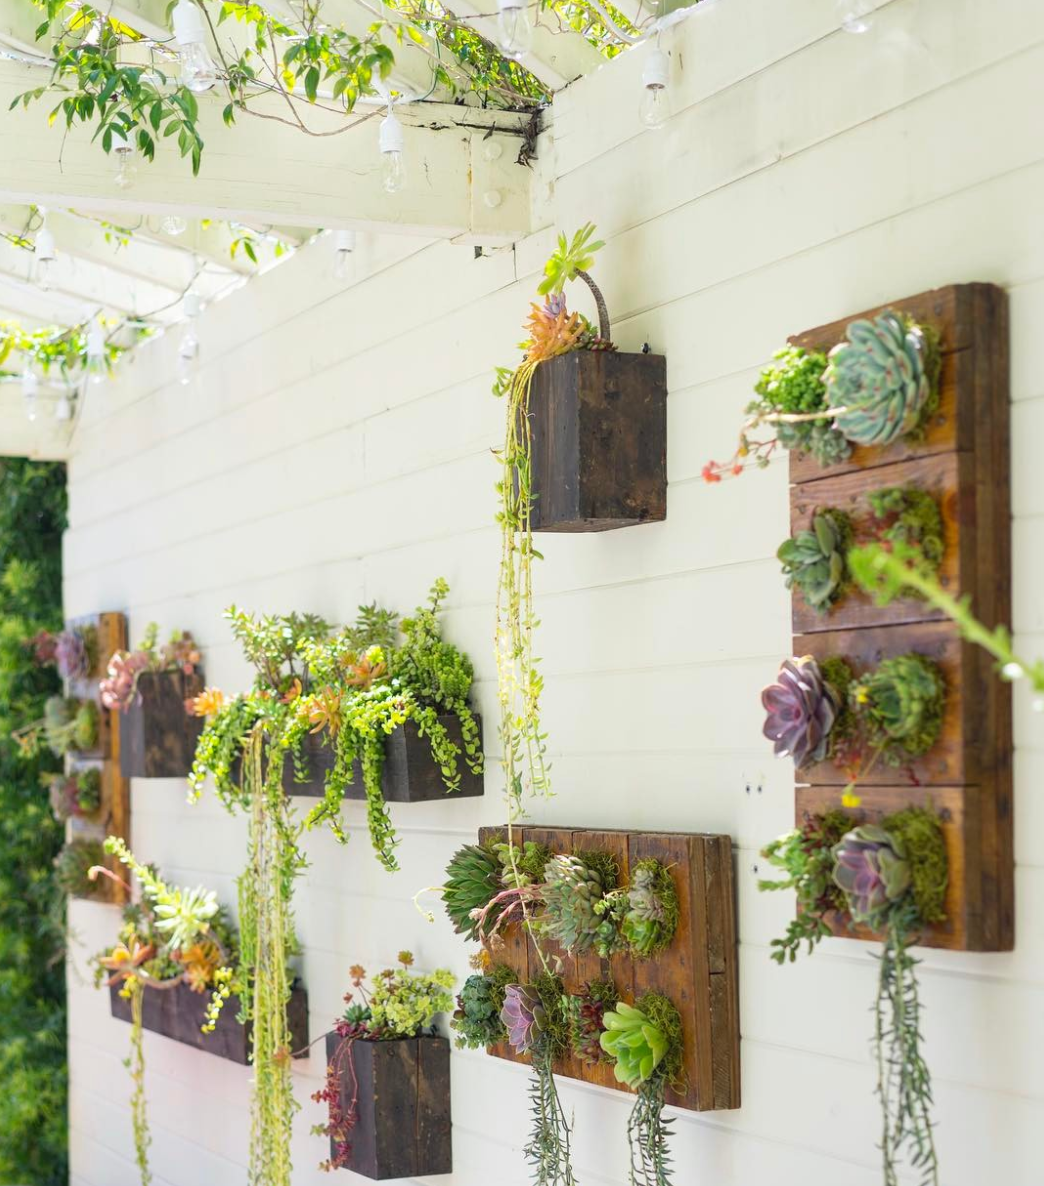 Dalla Vita  Landscape Designers create stunning vertical wall gardens that are drought resistant providing a lush look in your home.